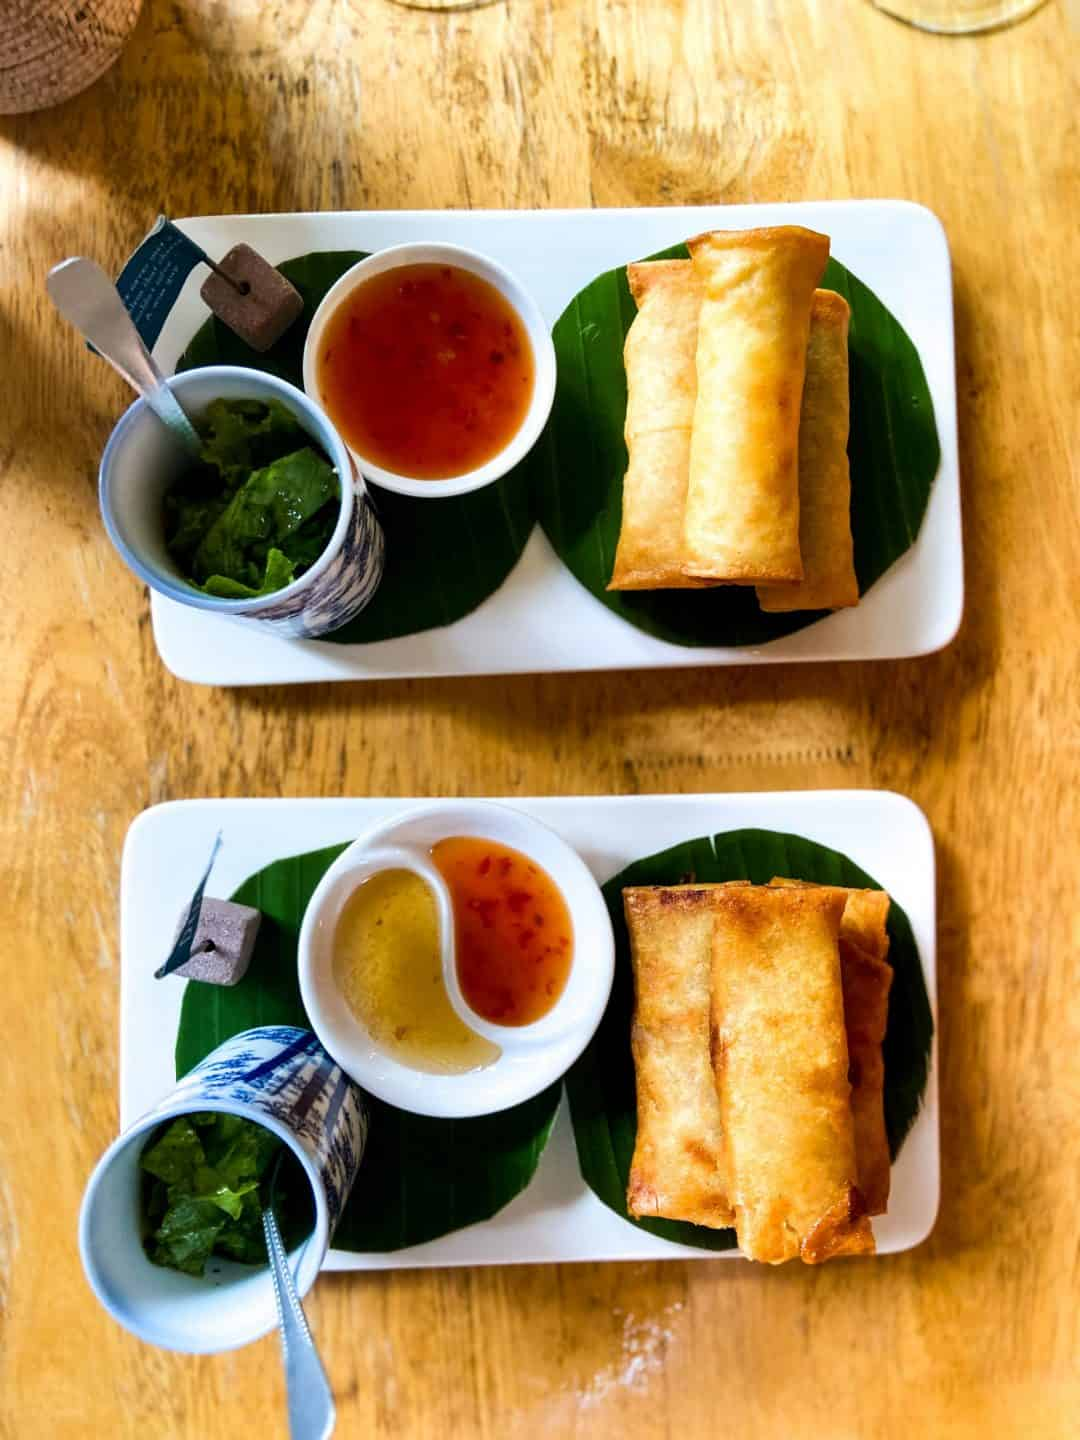 Fried Spring rolls at WILD - Creative Bar & Eatery